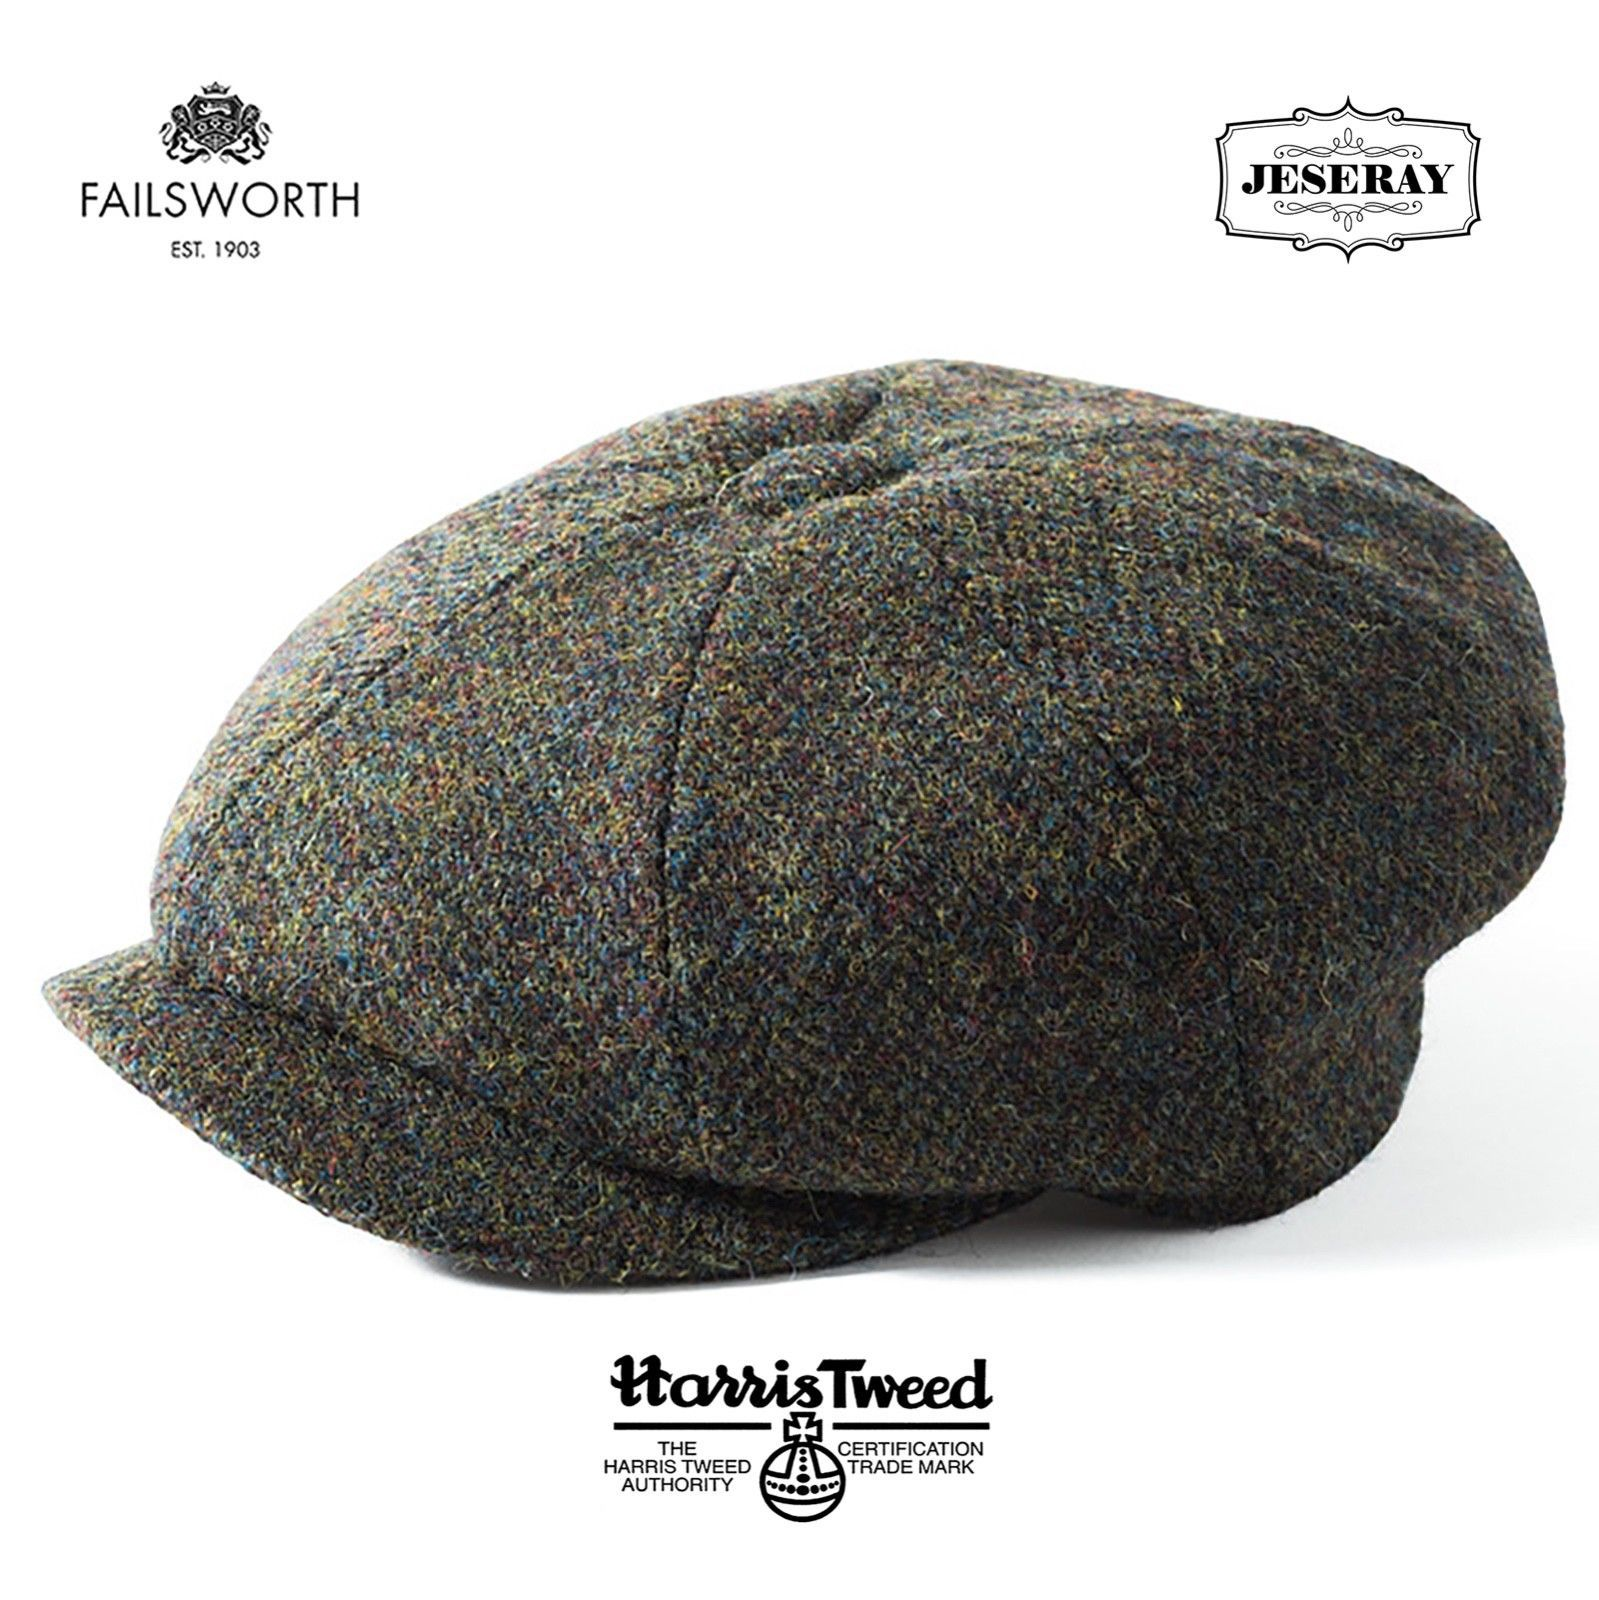 Mens Hats 163619  Failsworth Carloway Harris Tweed Wool Green Brown Newsboy  Cap Hat -  BUY IT NOW ONLY   32.95 on  eBay  failsworth  carloway  harris   tweed ... 5b3c994ae78